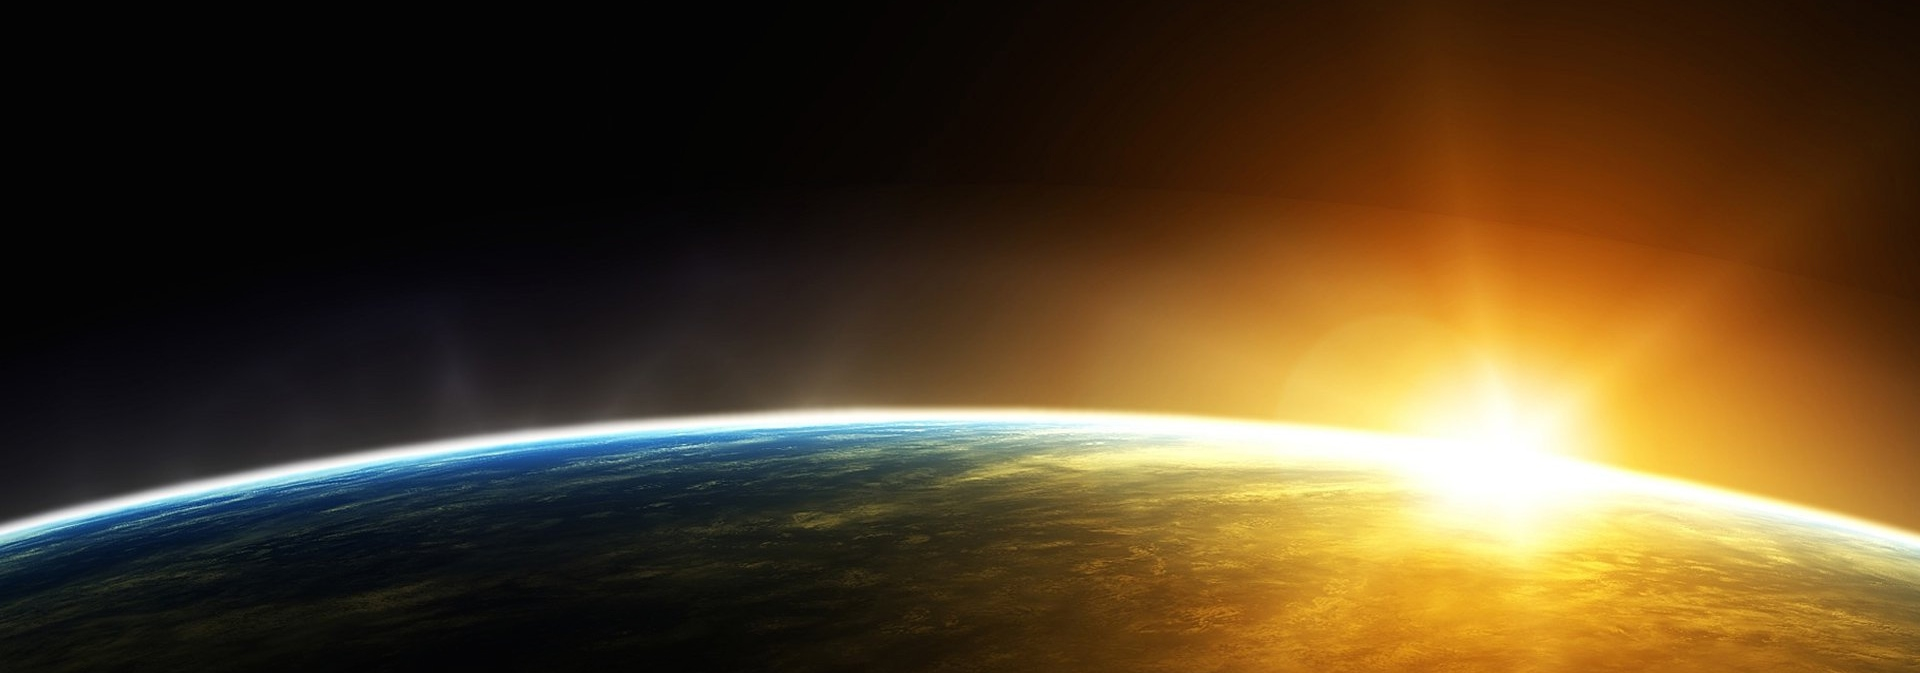 IT Sunrise Over Earth on Right Horizontal